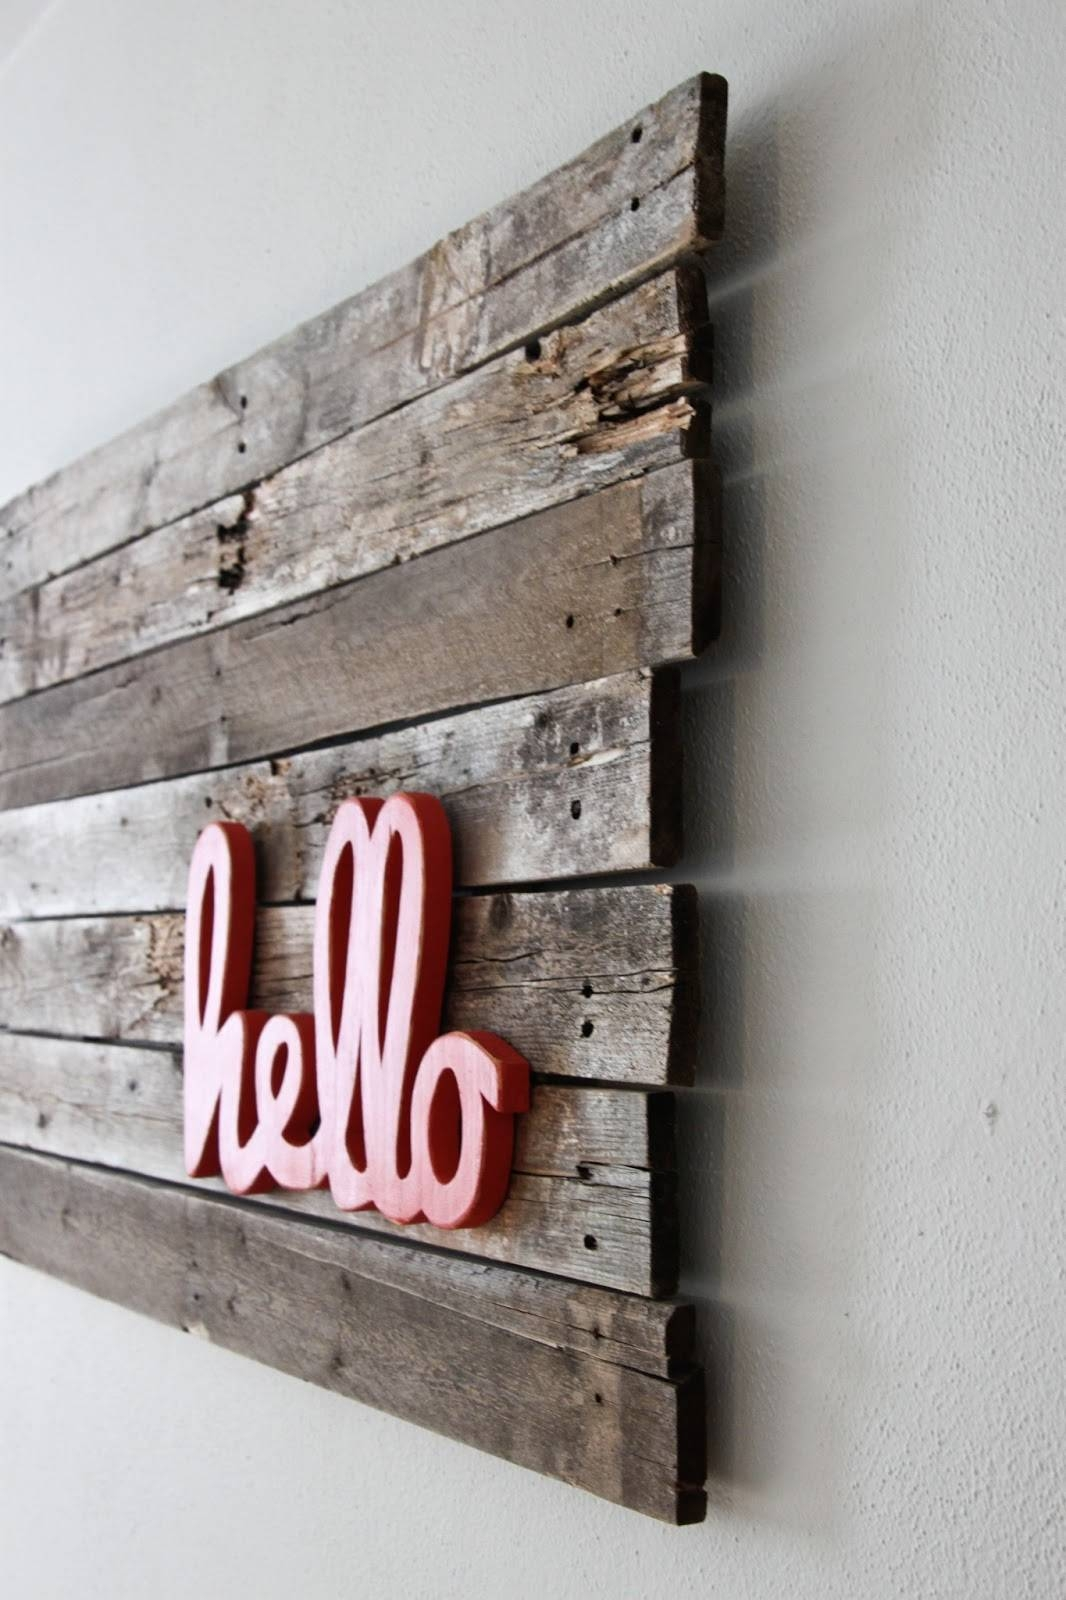 Wall Art Words Wooden Saw Word Like – Dma Homes | #89896 Pertaining To Latest Wood Word Wall Art (View 16 of 22)